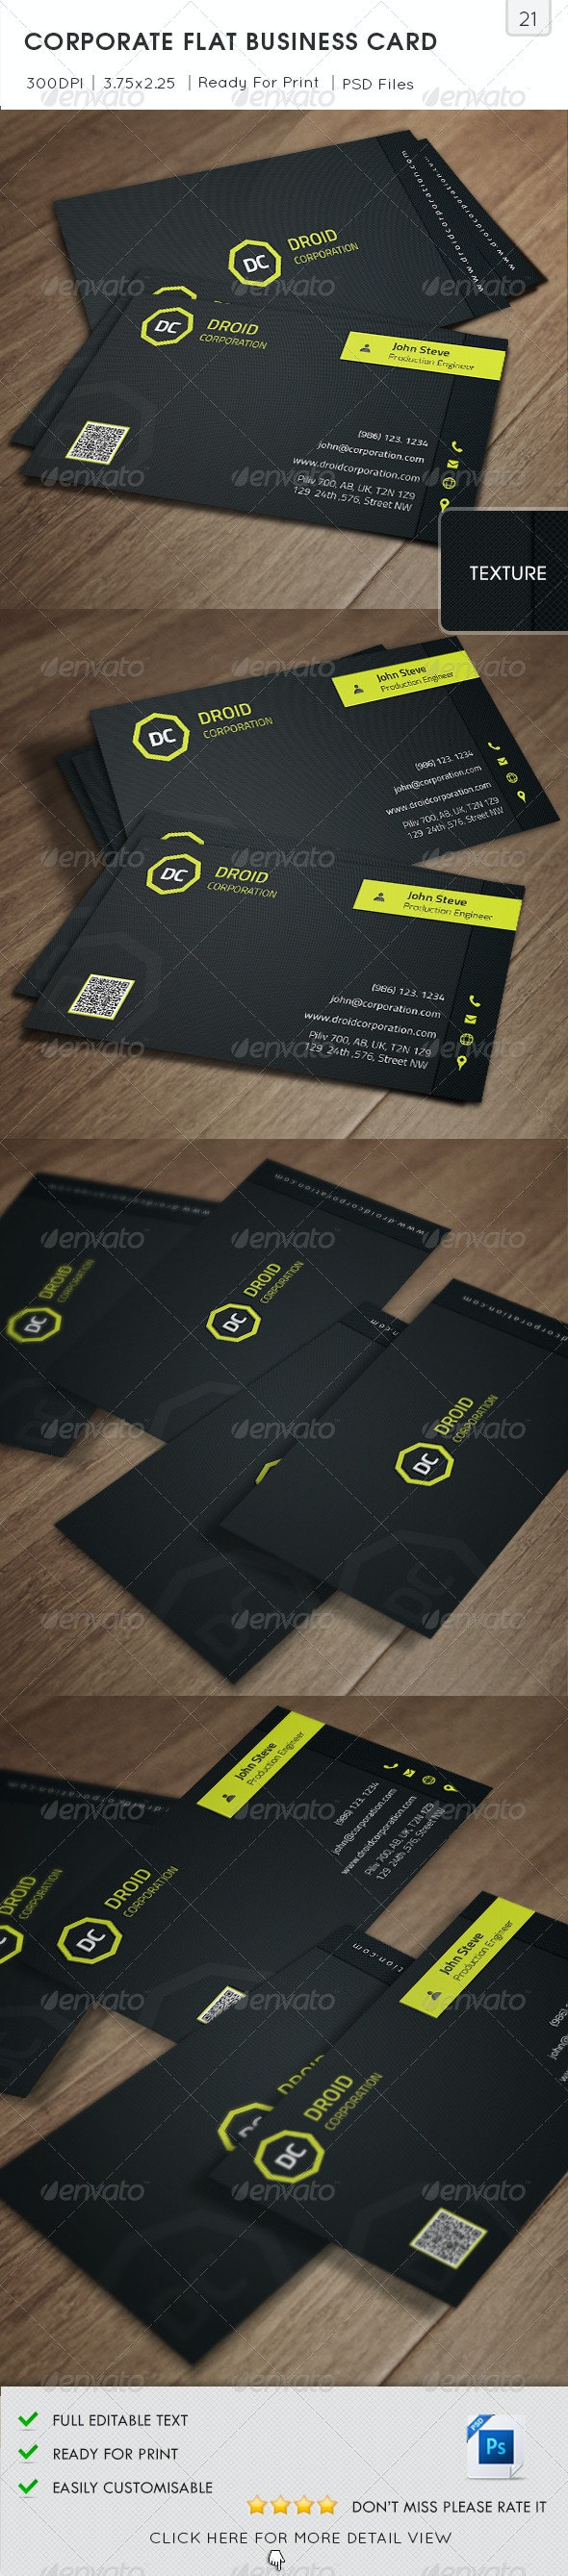 Corporate Flat Business Card v21 - Corporate Business Cards